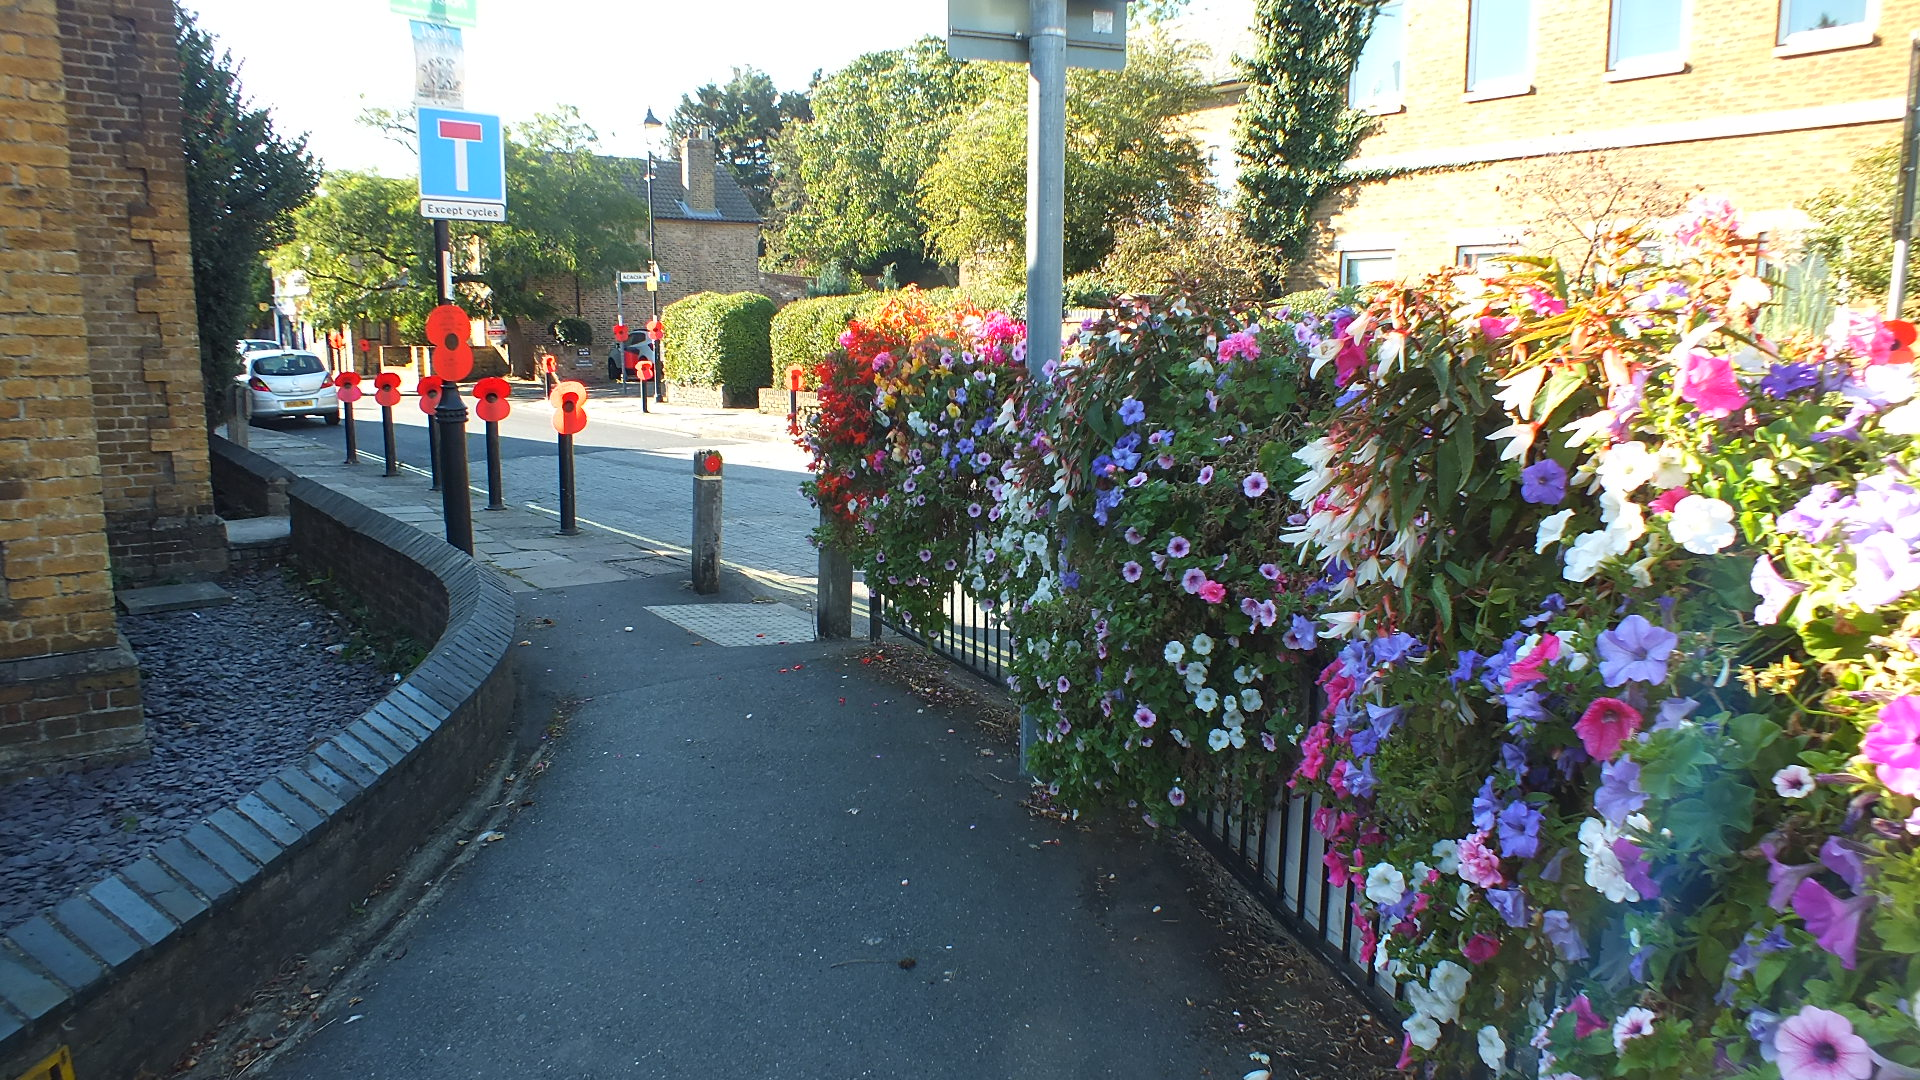 Walking towards the village green takes you past glorious flowers and remembrance poppies